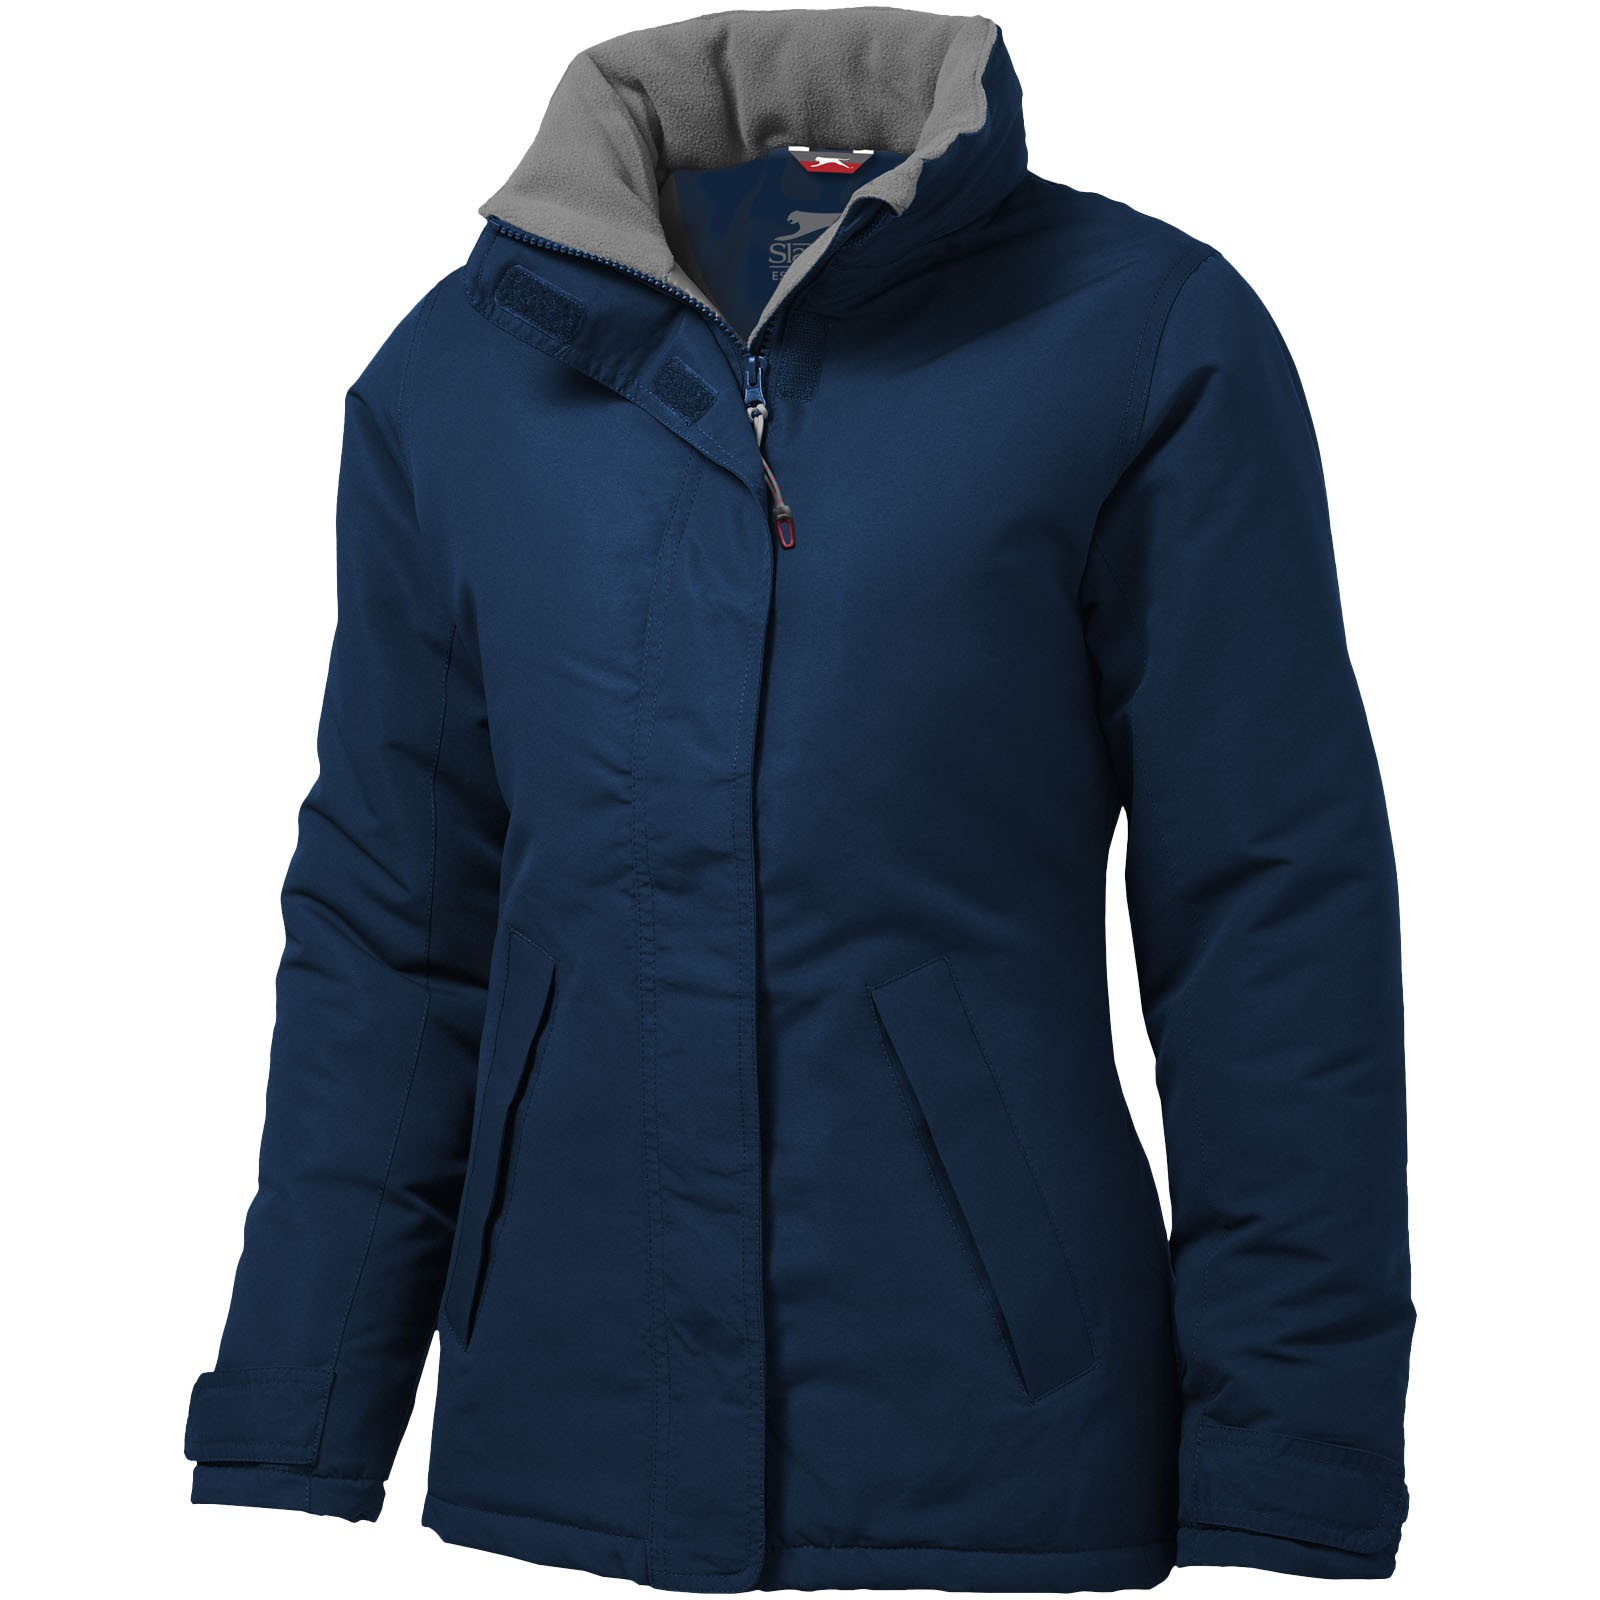 Under Spin ladies insulated jacket - Navy / XL